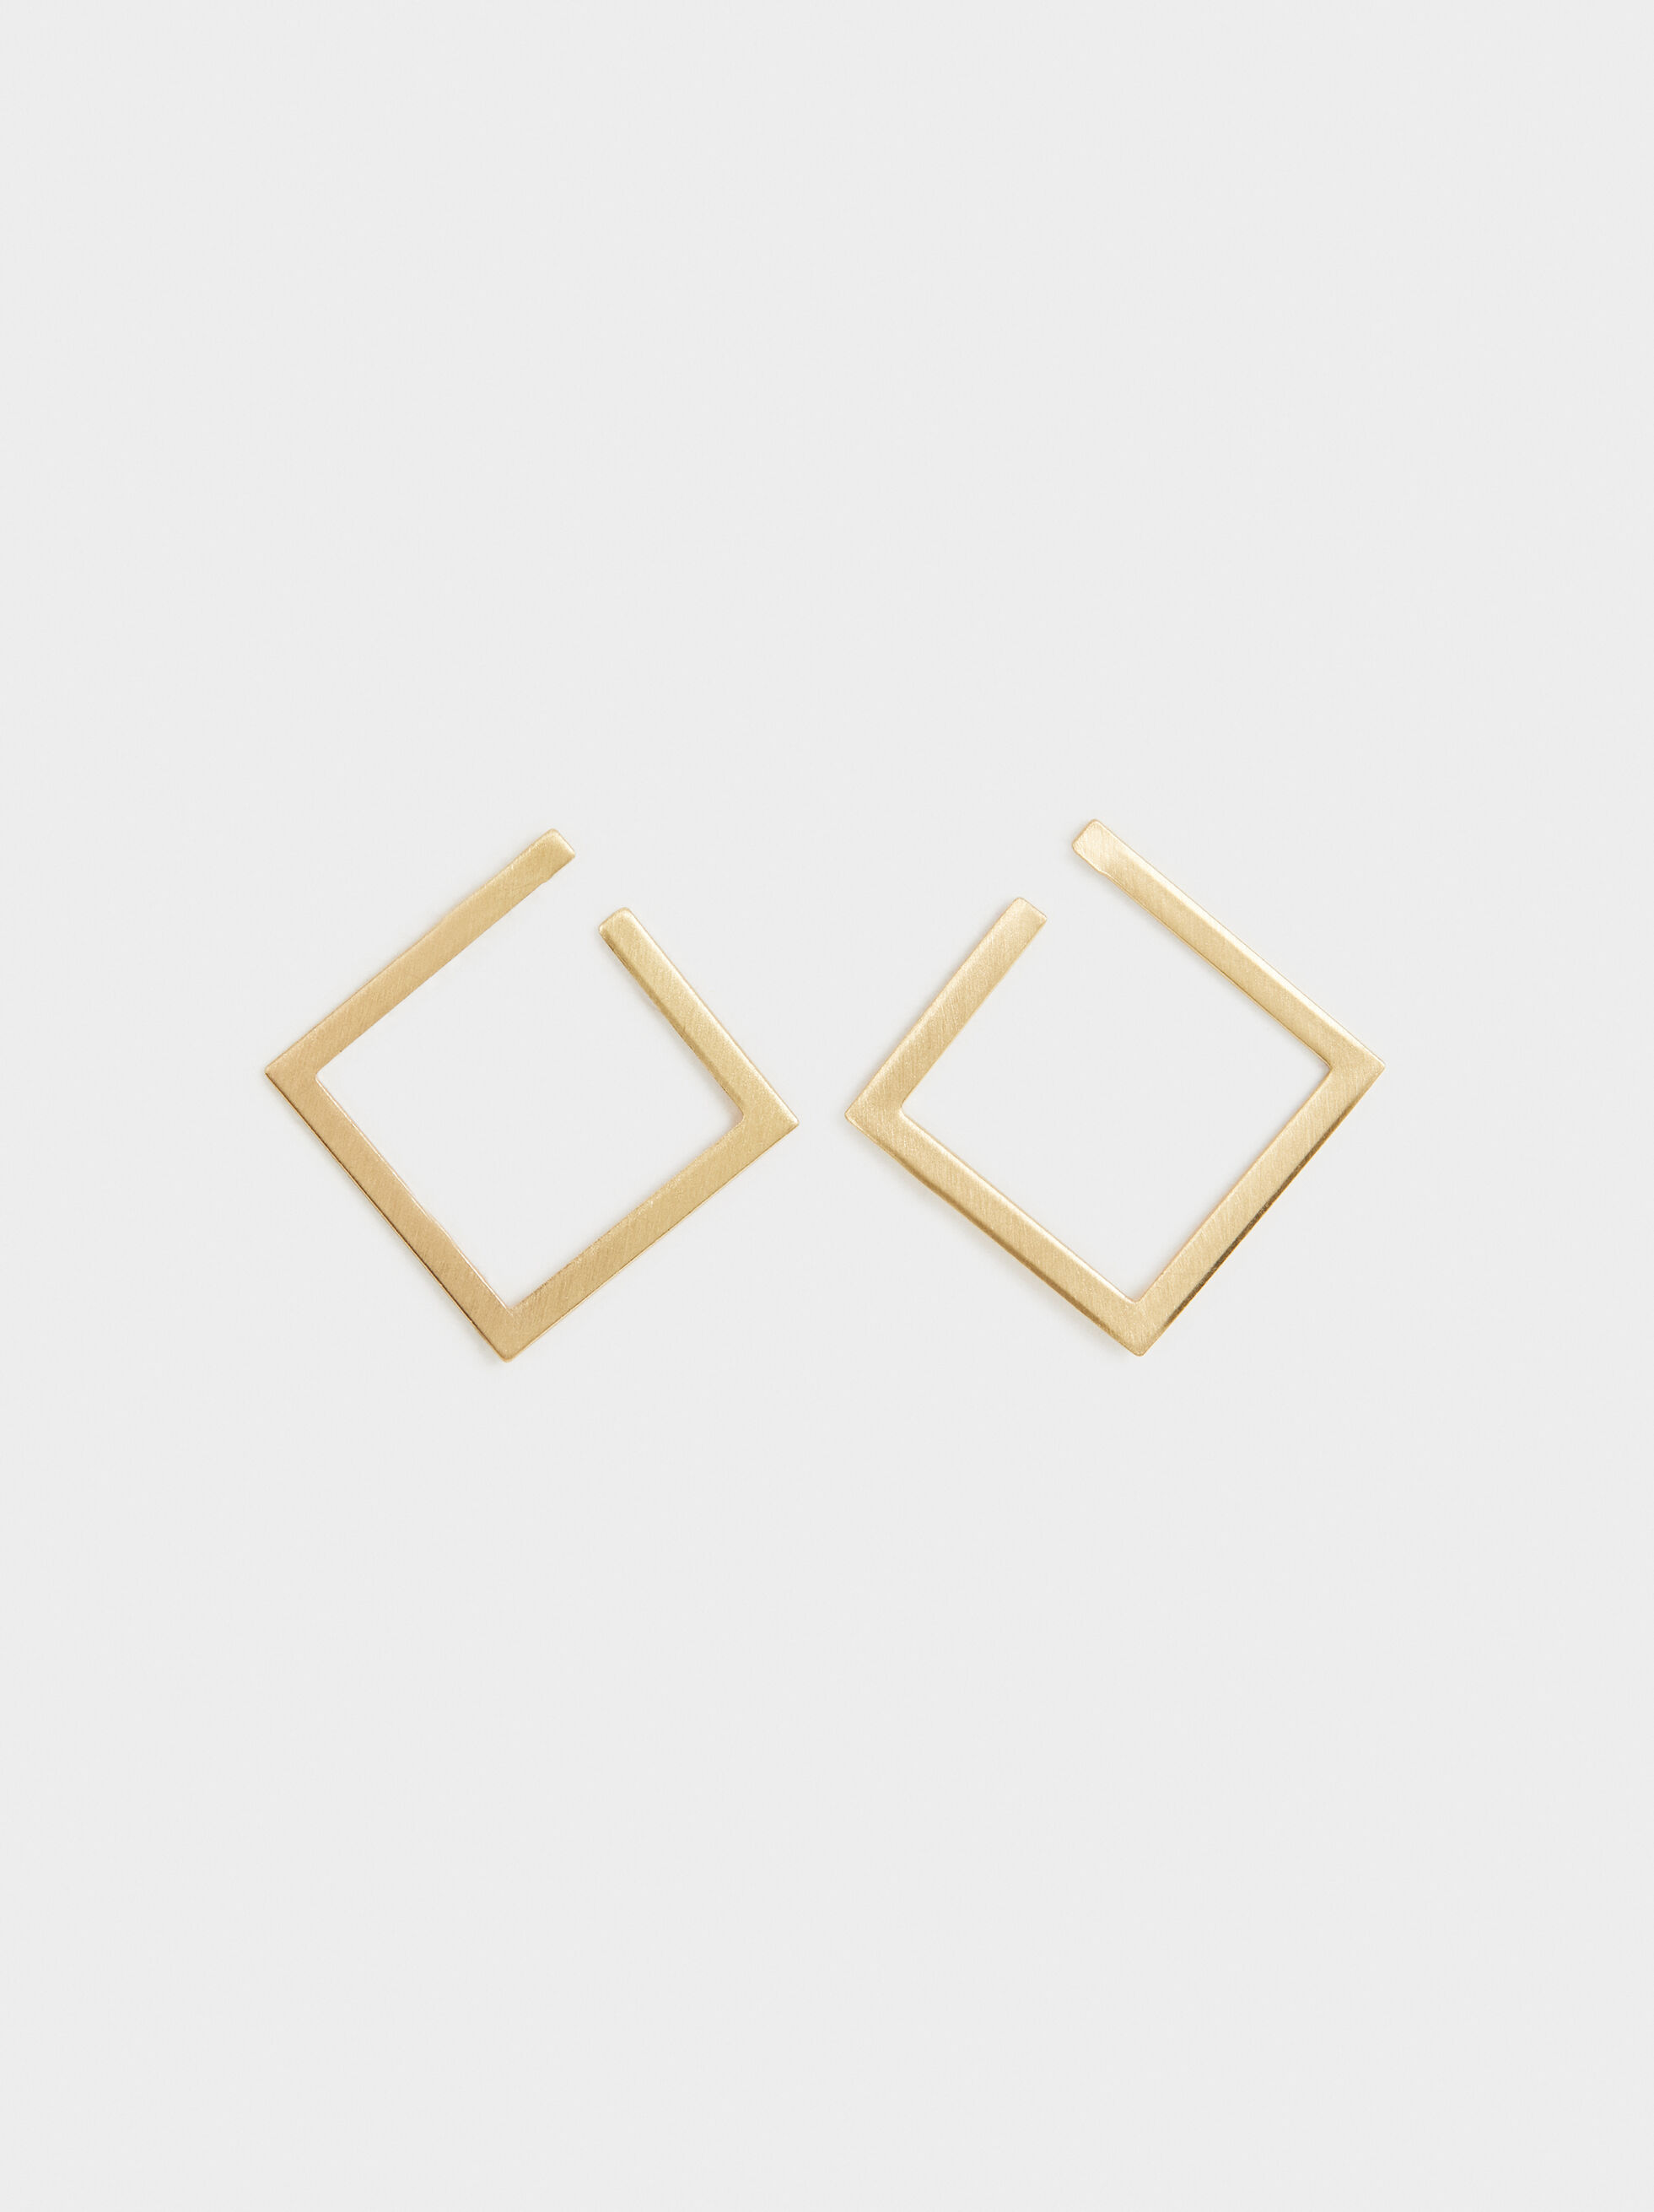 Medium Diamond-Shaped Earrings, Golden, hi-res